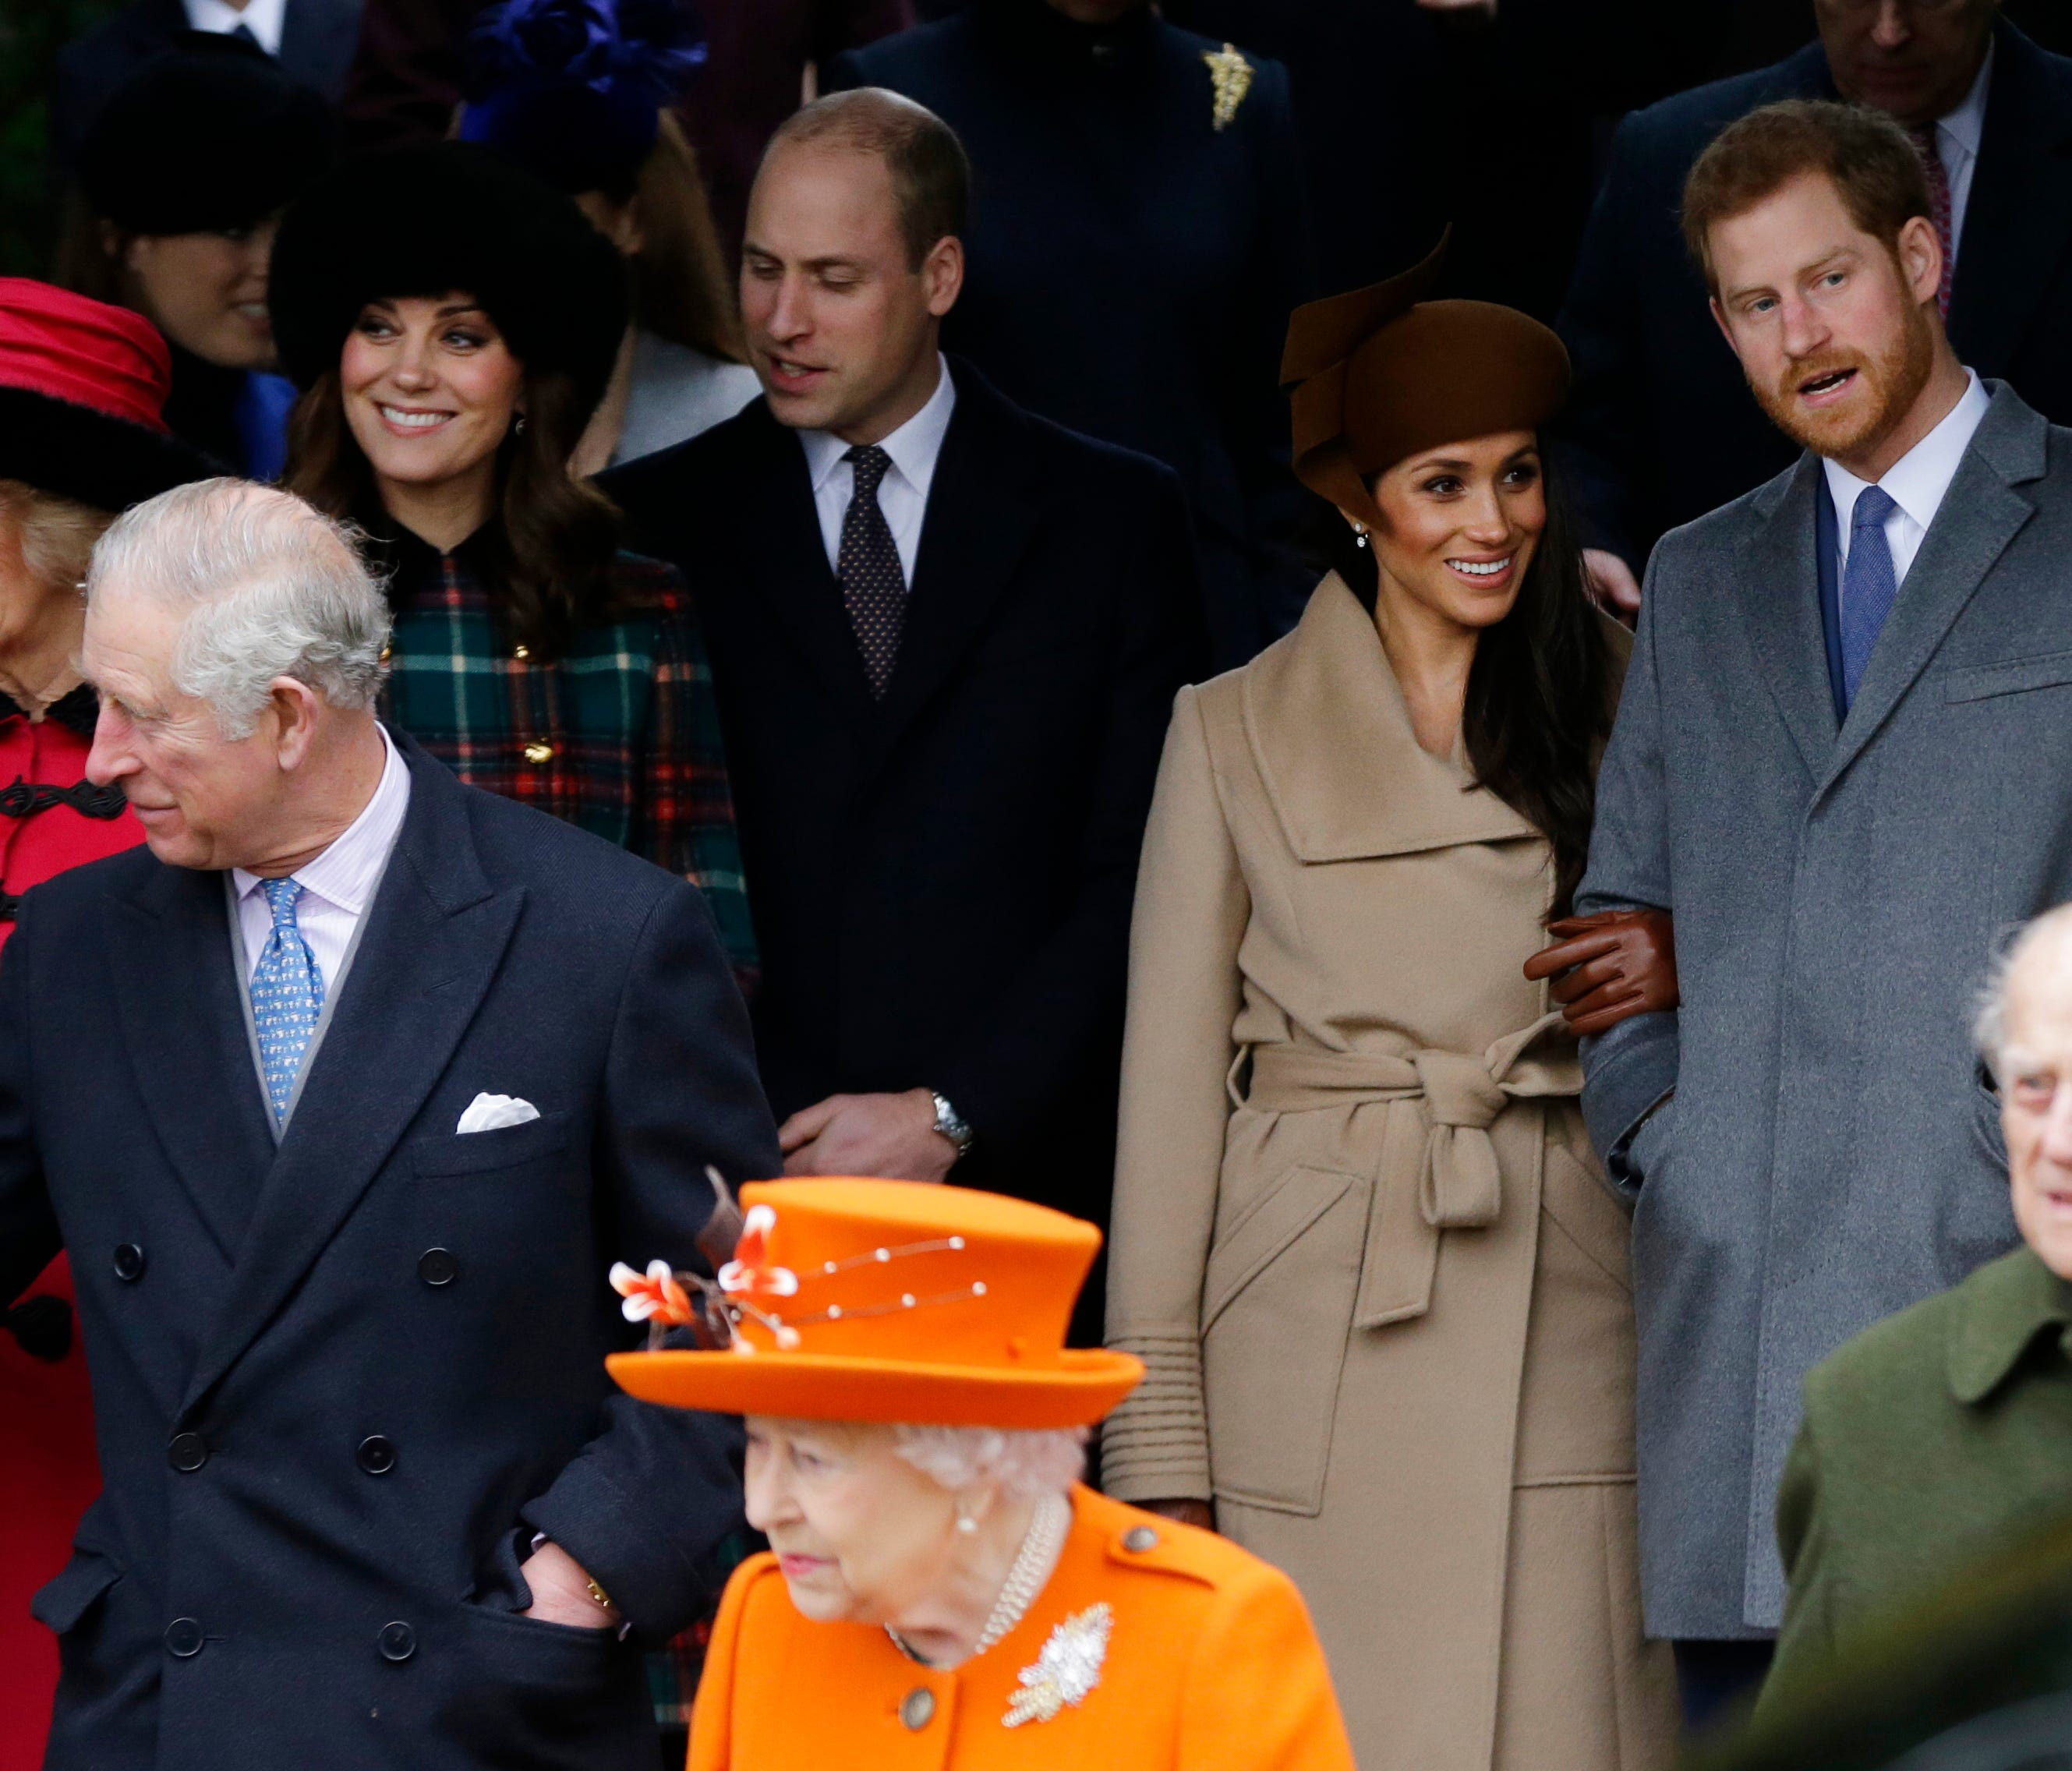 In this Monday, Dec. 25, 2017 file photo, front from left, Prince Charles, Queen Elizabeth II and Prince Philip. Rear From left, Camilla, Duchess of Cornwall, Kate, Duchess of Cambridge, Price William, Meghan Markle, and her fiancee Prince Harry, fol